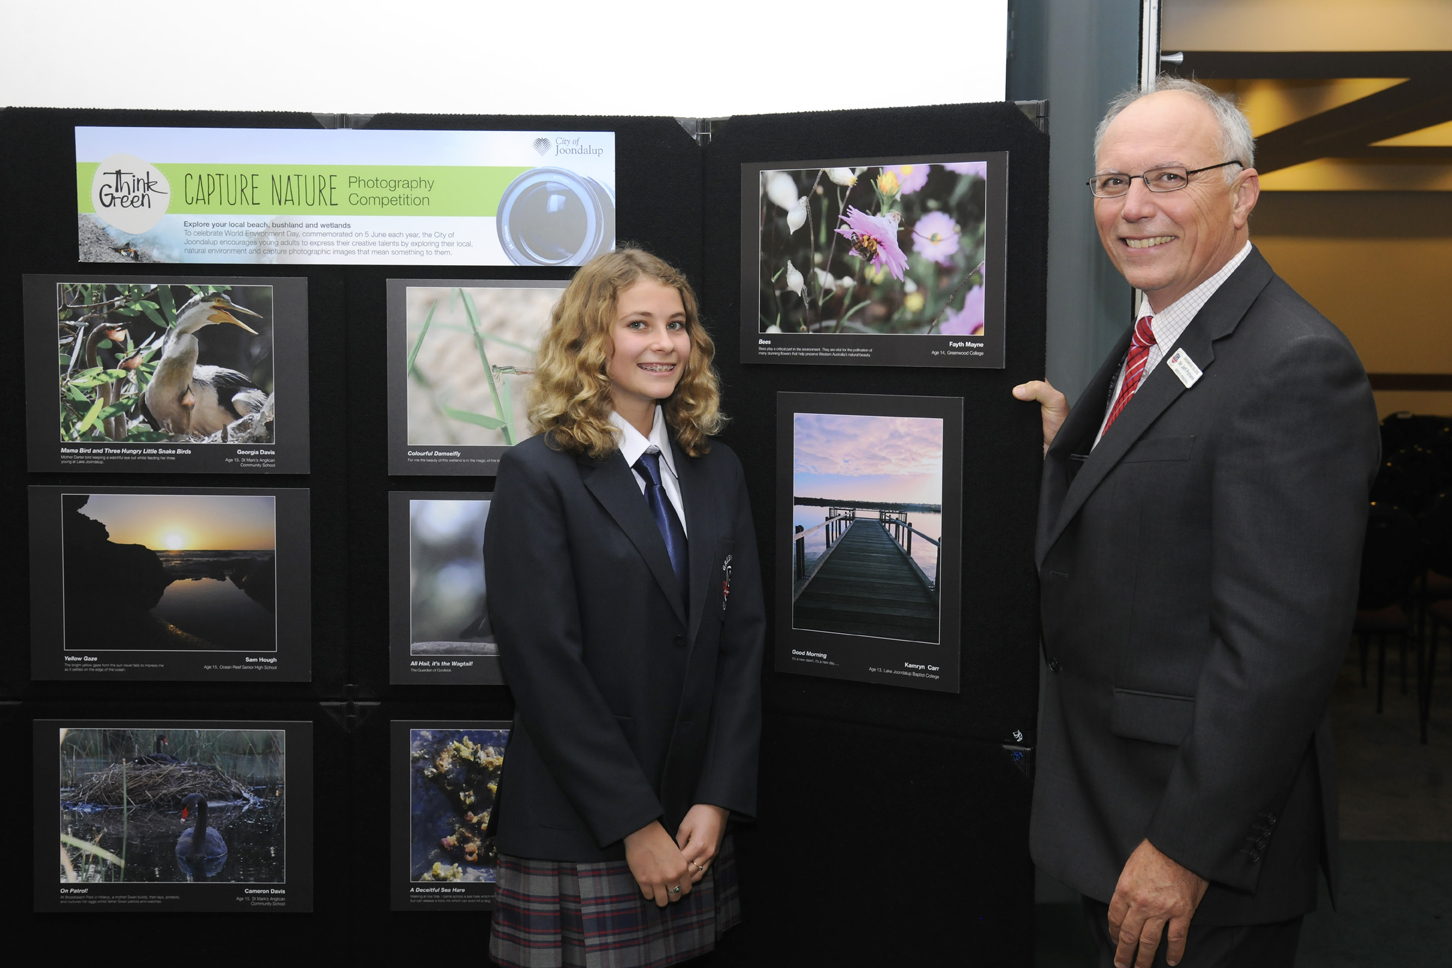 Fayth Mayne from Greenwood College pictured with her image Bees (top right). Picture: Chris Kershaw